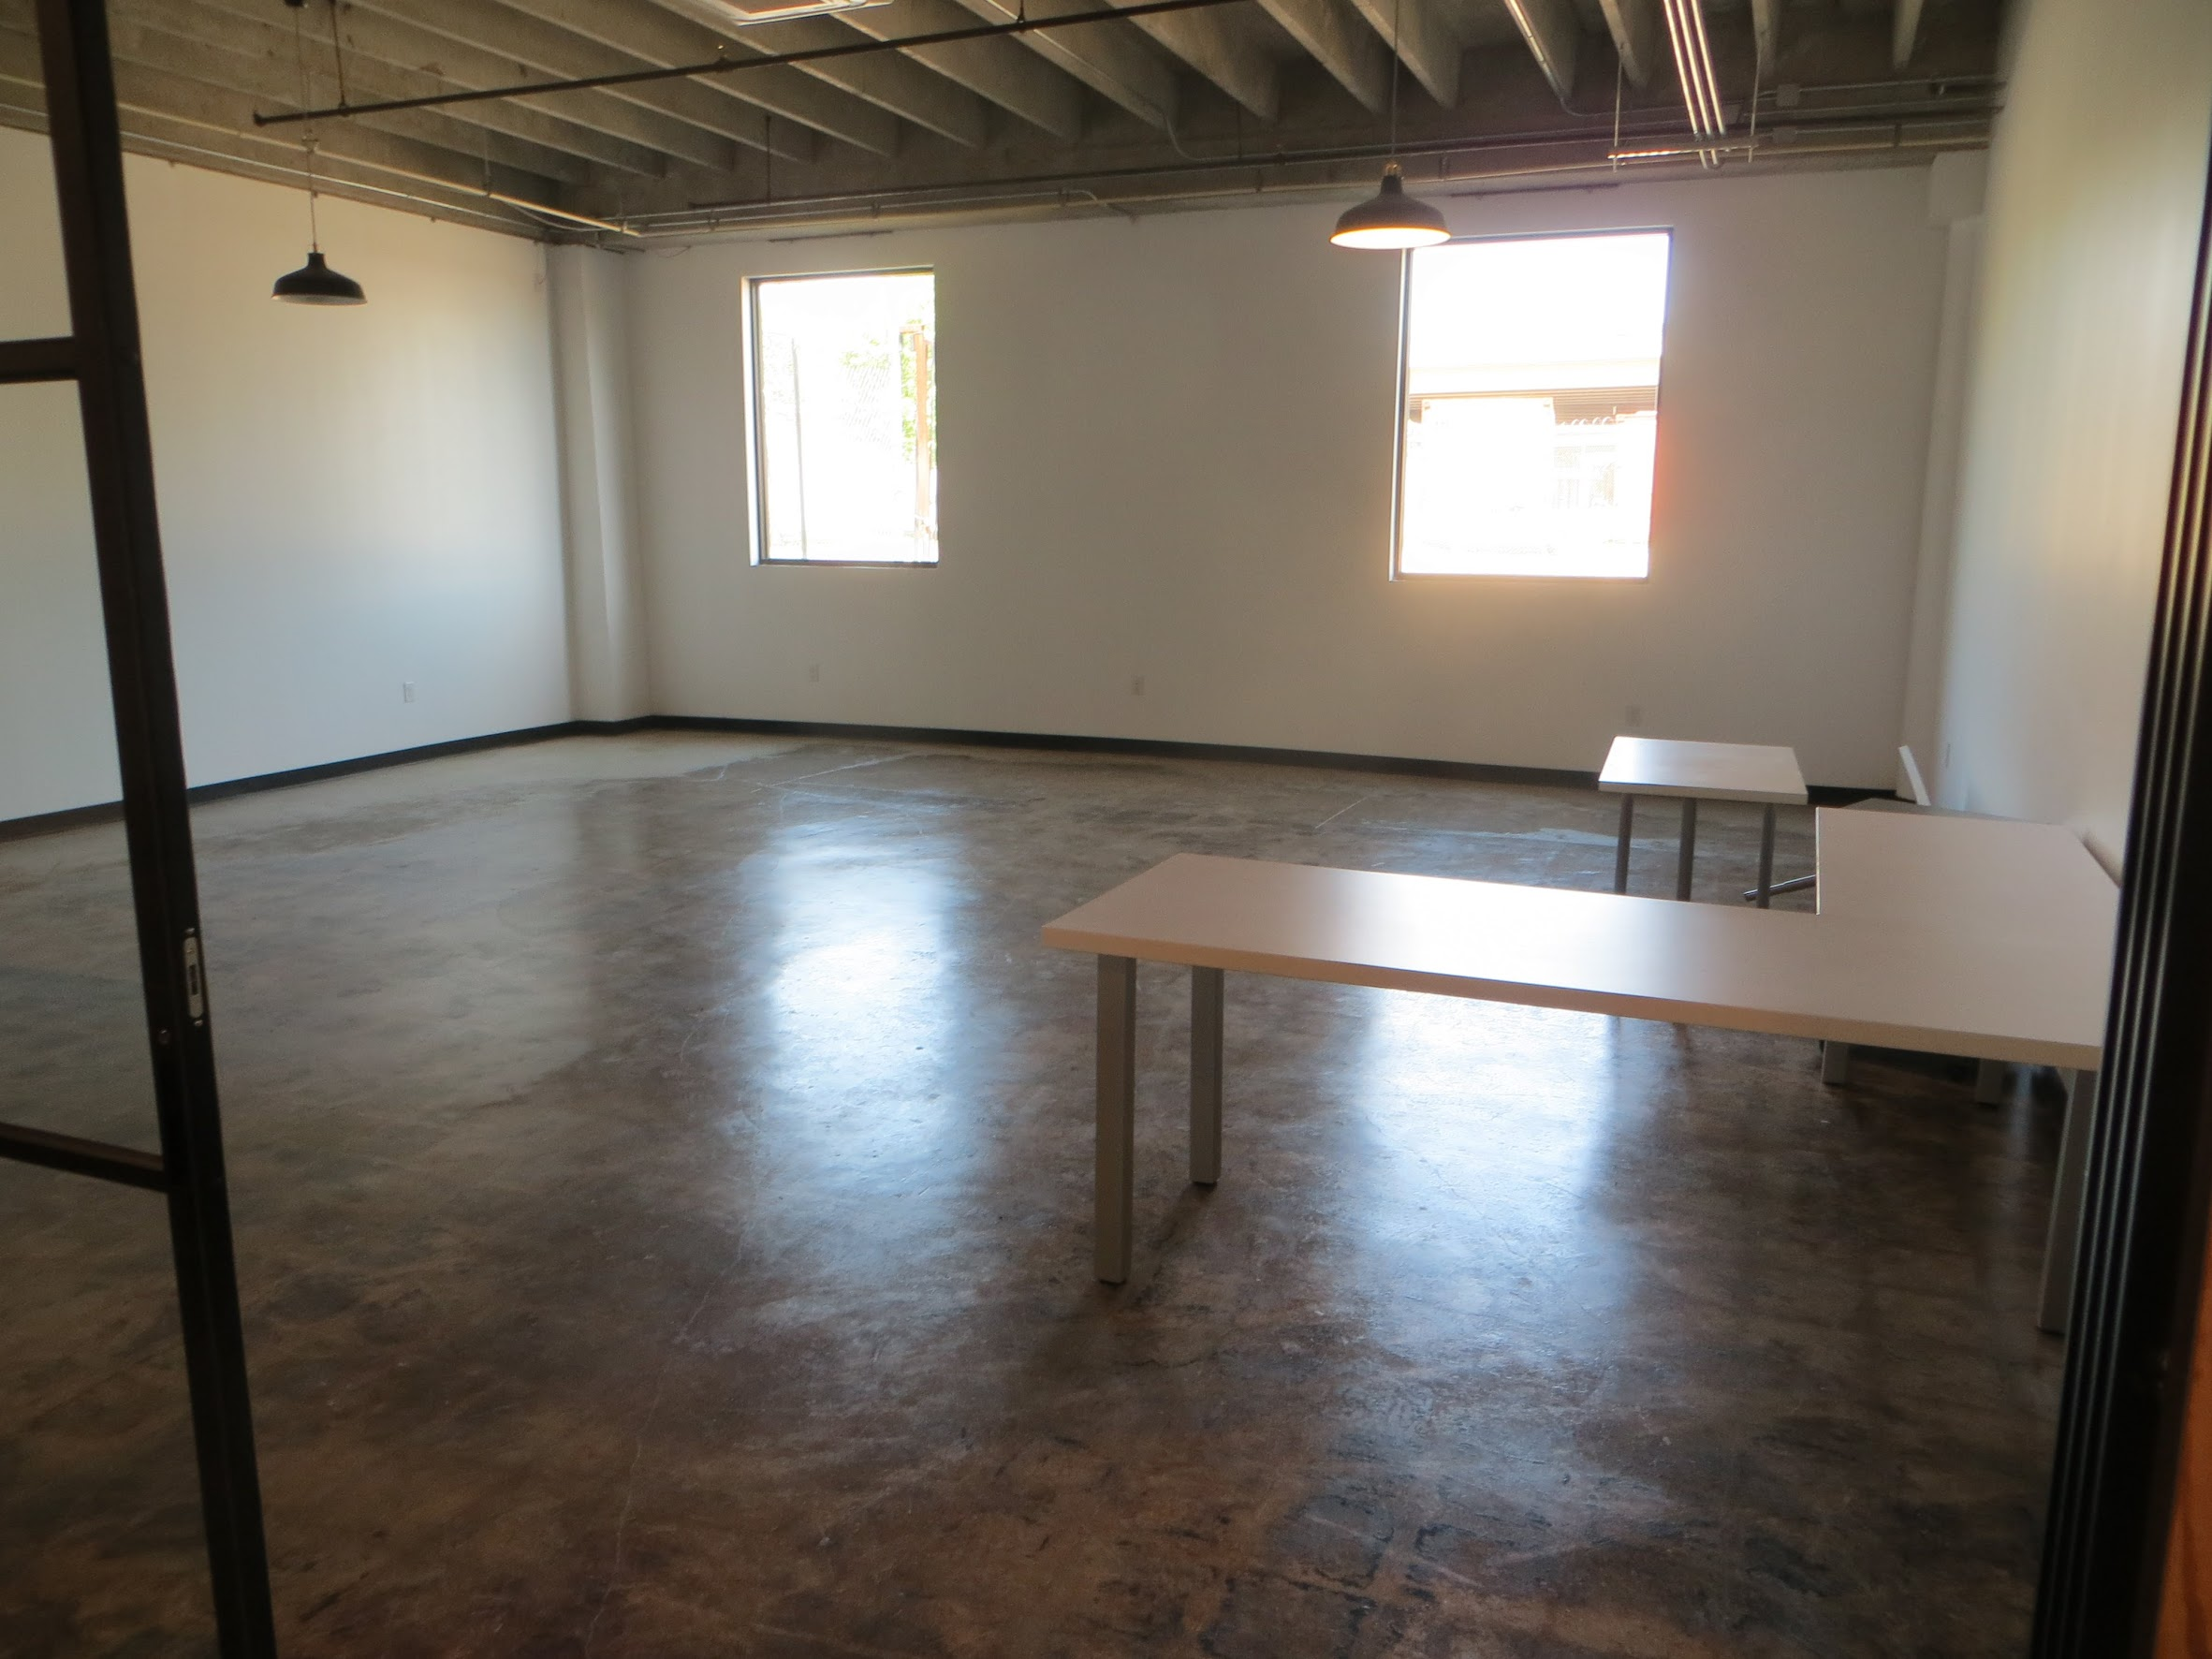 Our WORK training classroom. Soon this will be filled with students who are working to make poverty history for their families.